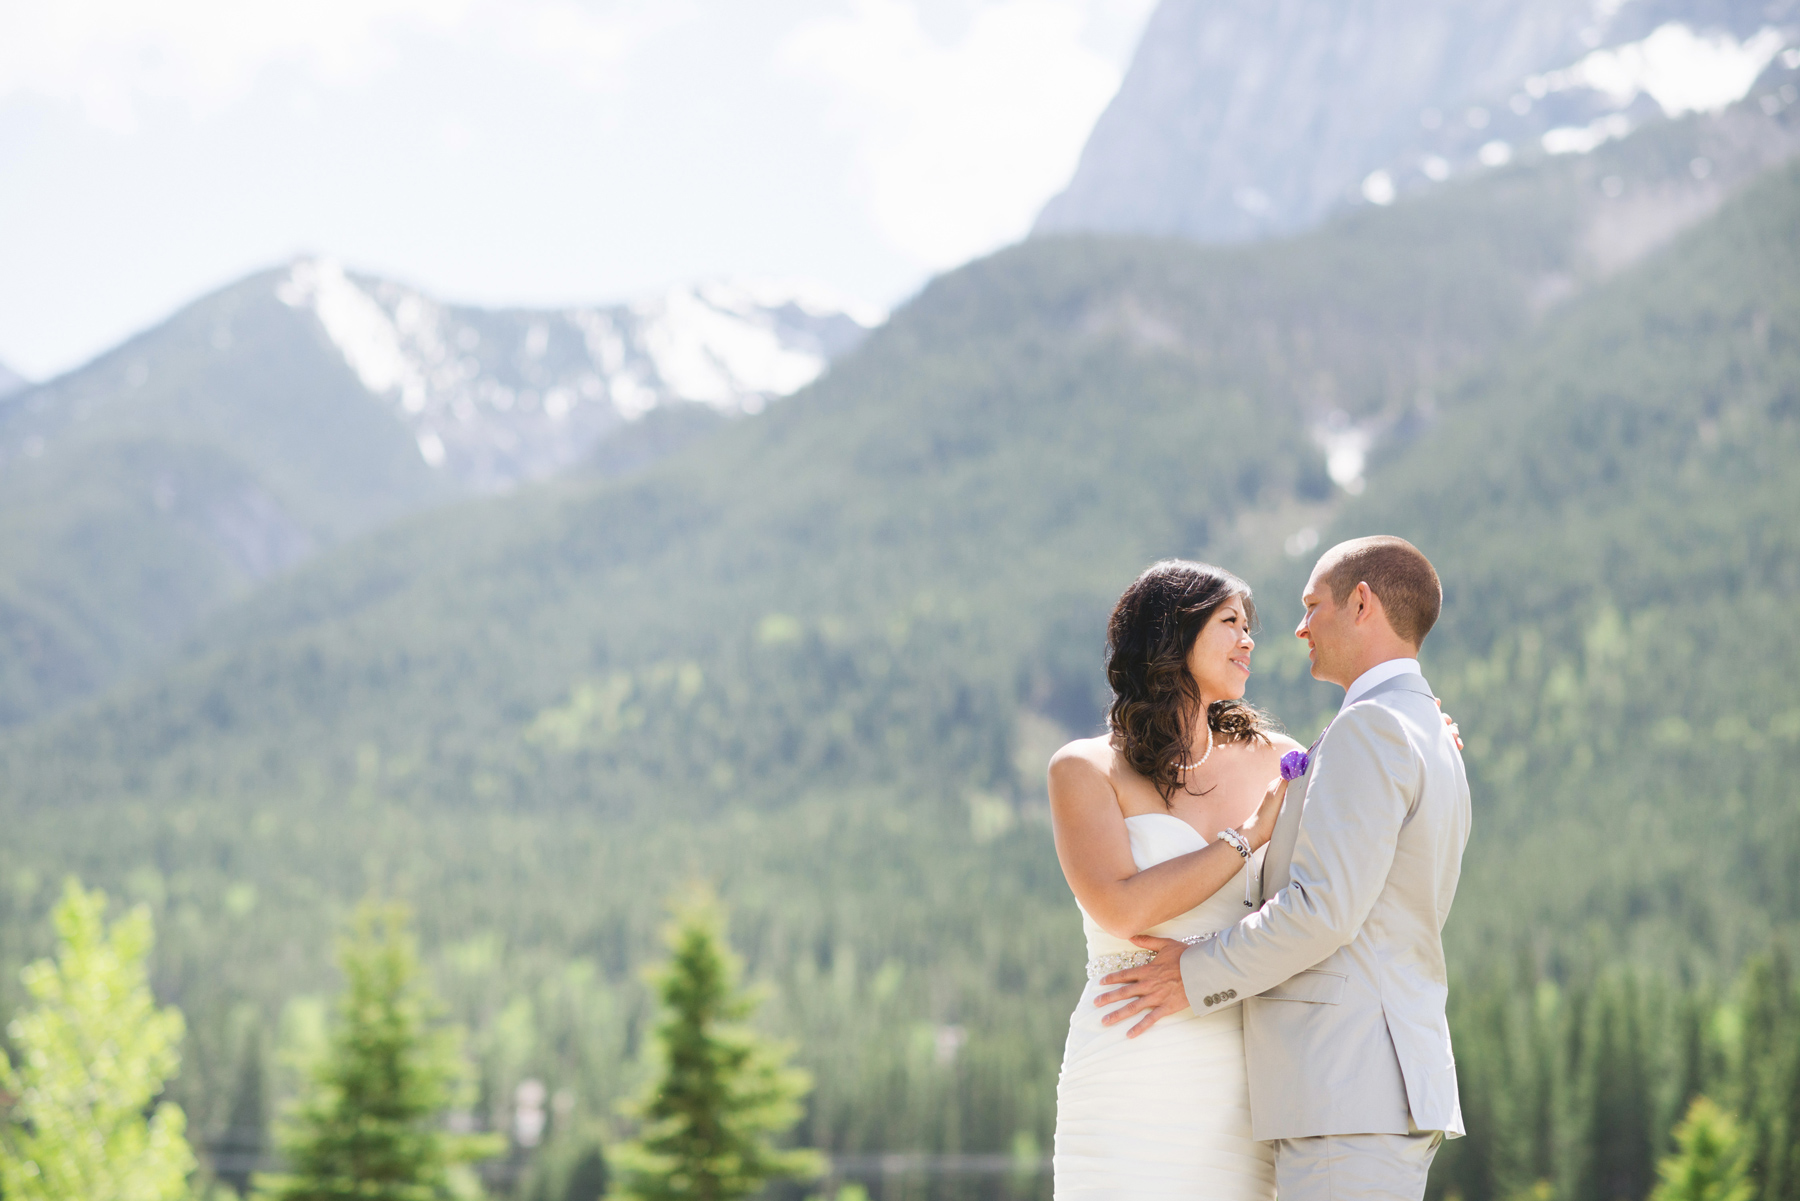 Peggy Amp James A Bear And Bison Country Inn Wedding Sneak Peek Canmore Wedding Photographer